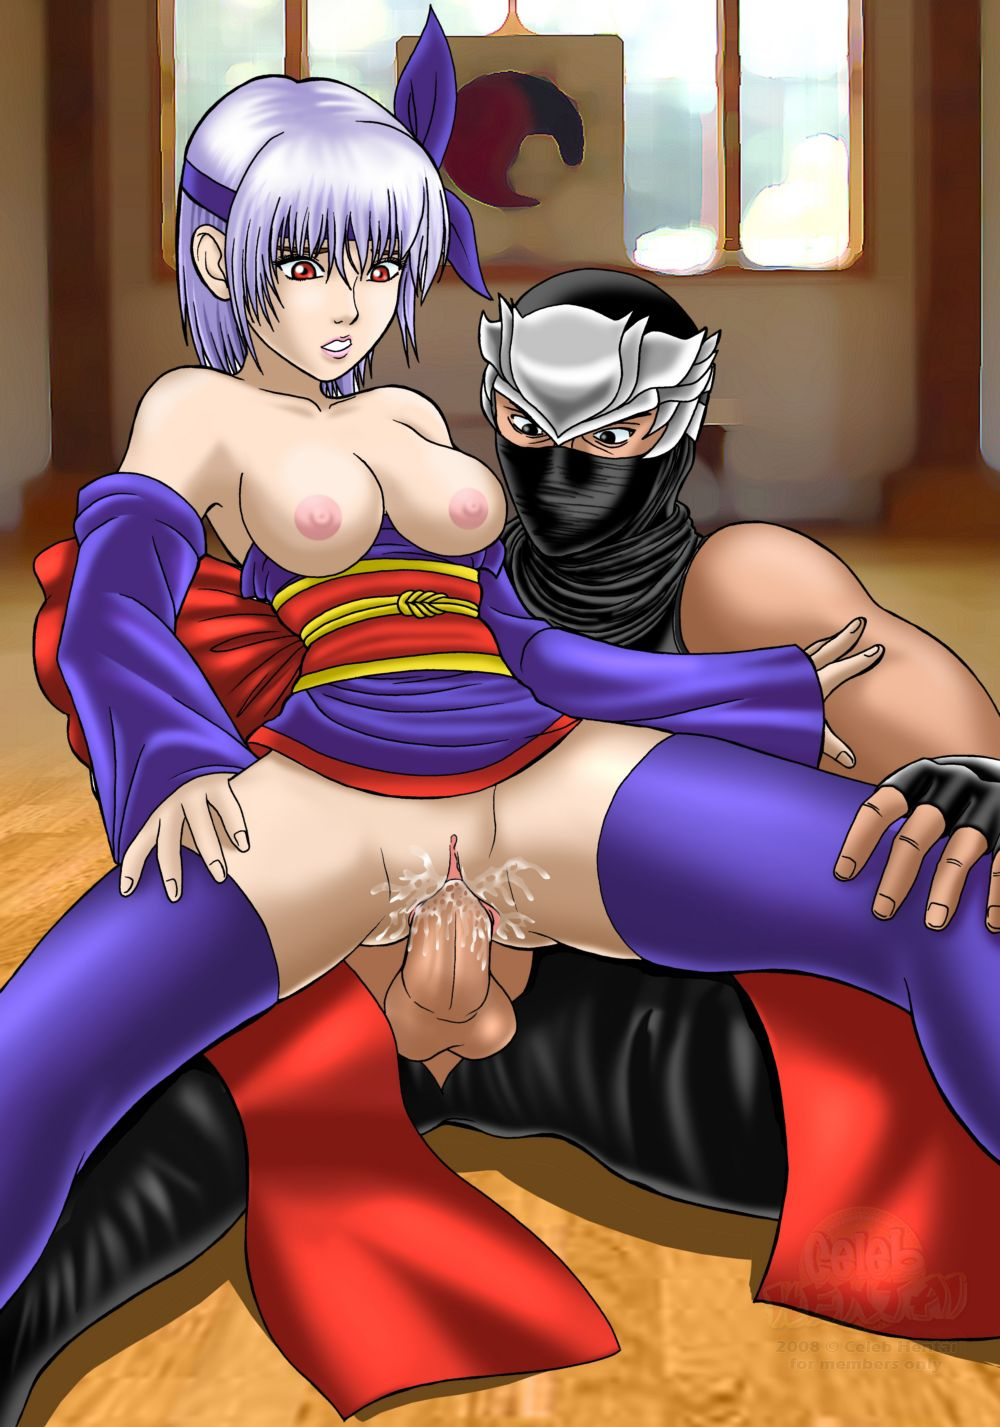 Ninja girl porn picture porncraft gallery